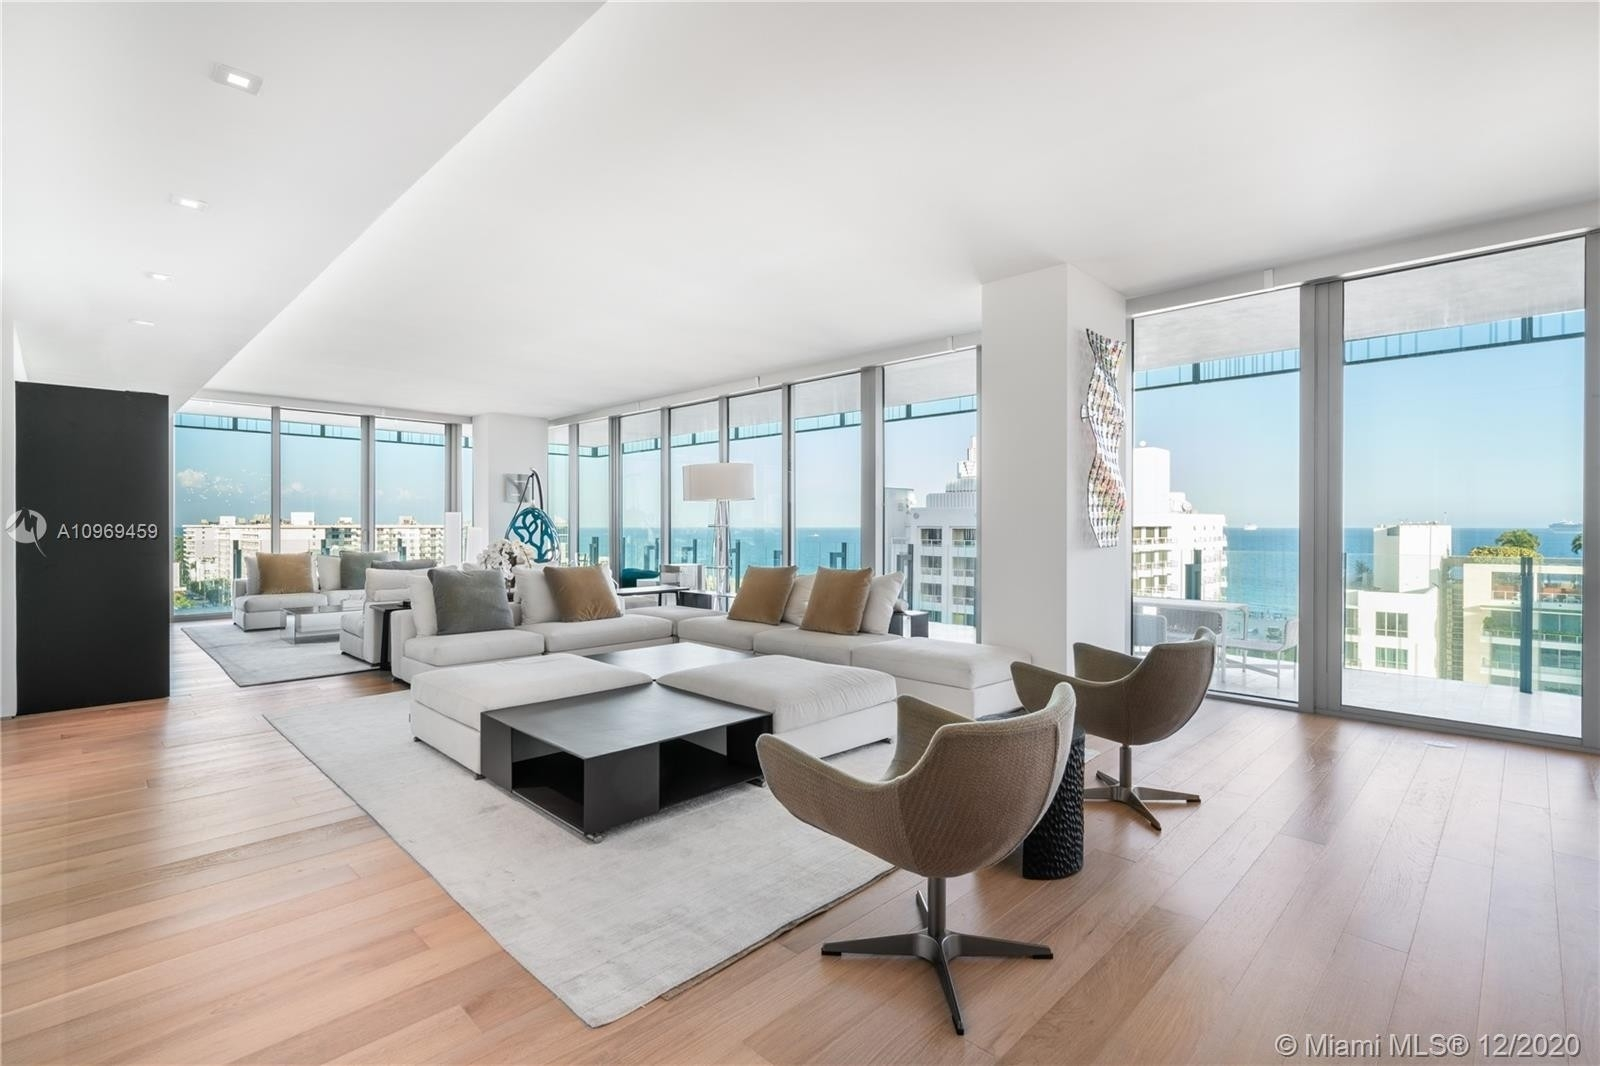 Condominium for Sale at 120 Ocean Dr , 1000 SoFi, Miami Beach, FL 33139